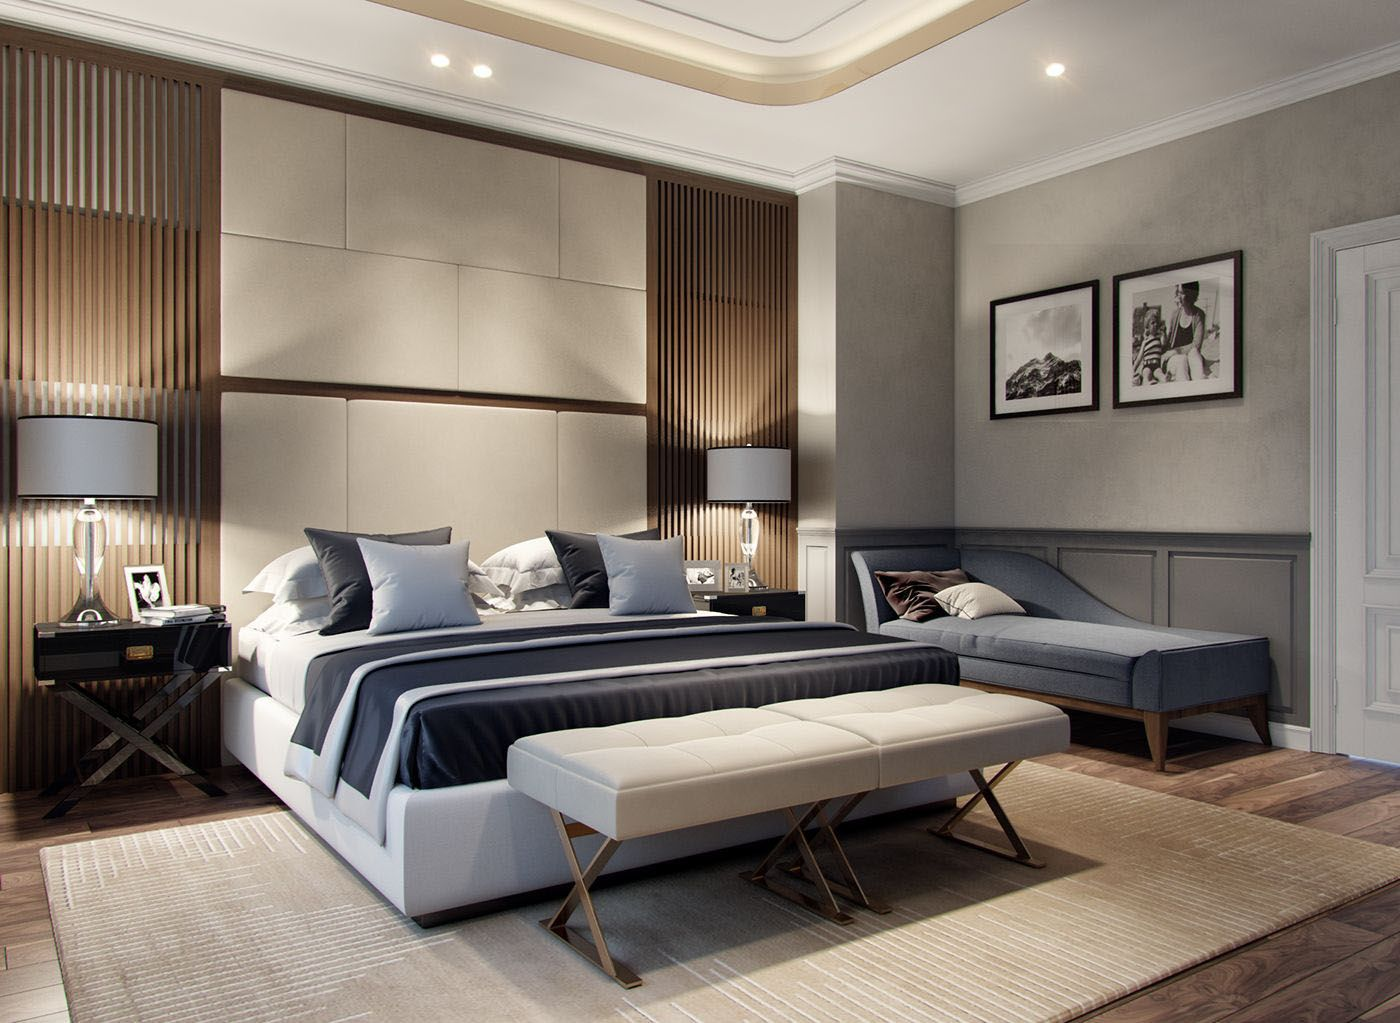 12 Tiny Small Apartment Layout Concepts (12)– Modern, Tiny